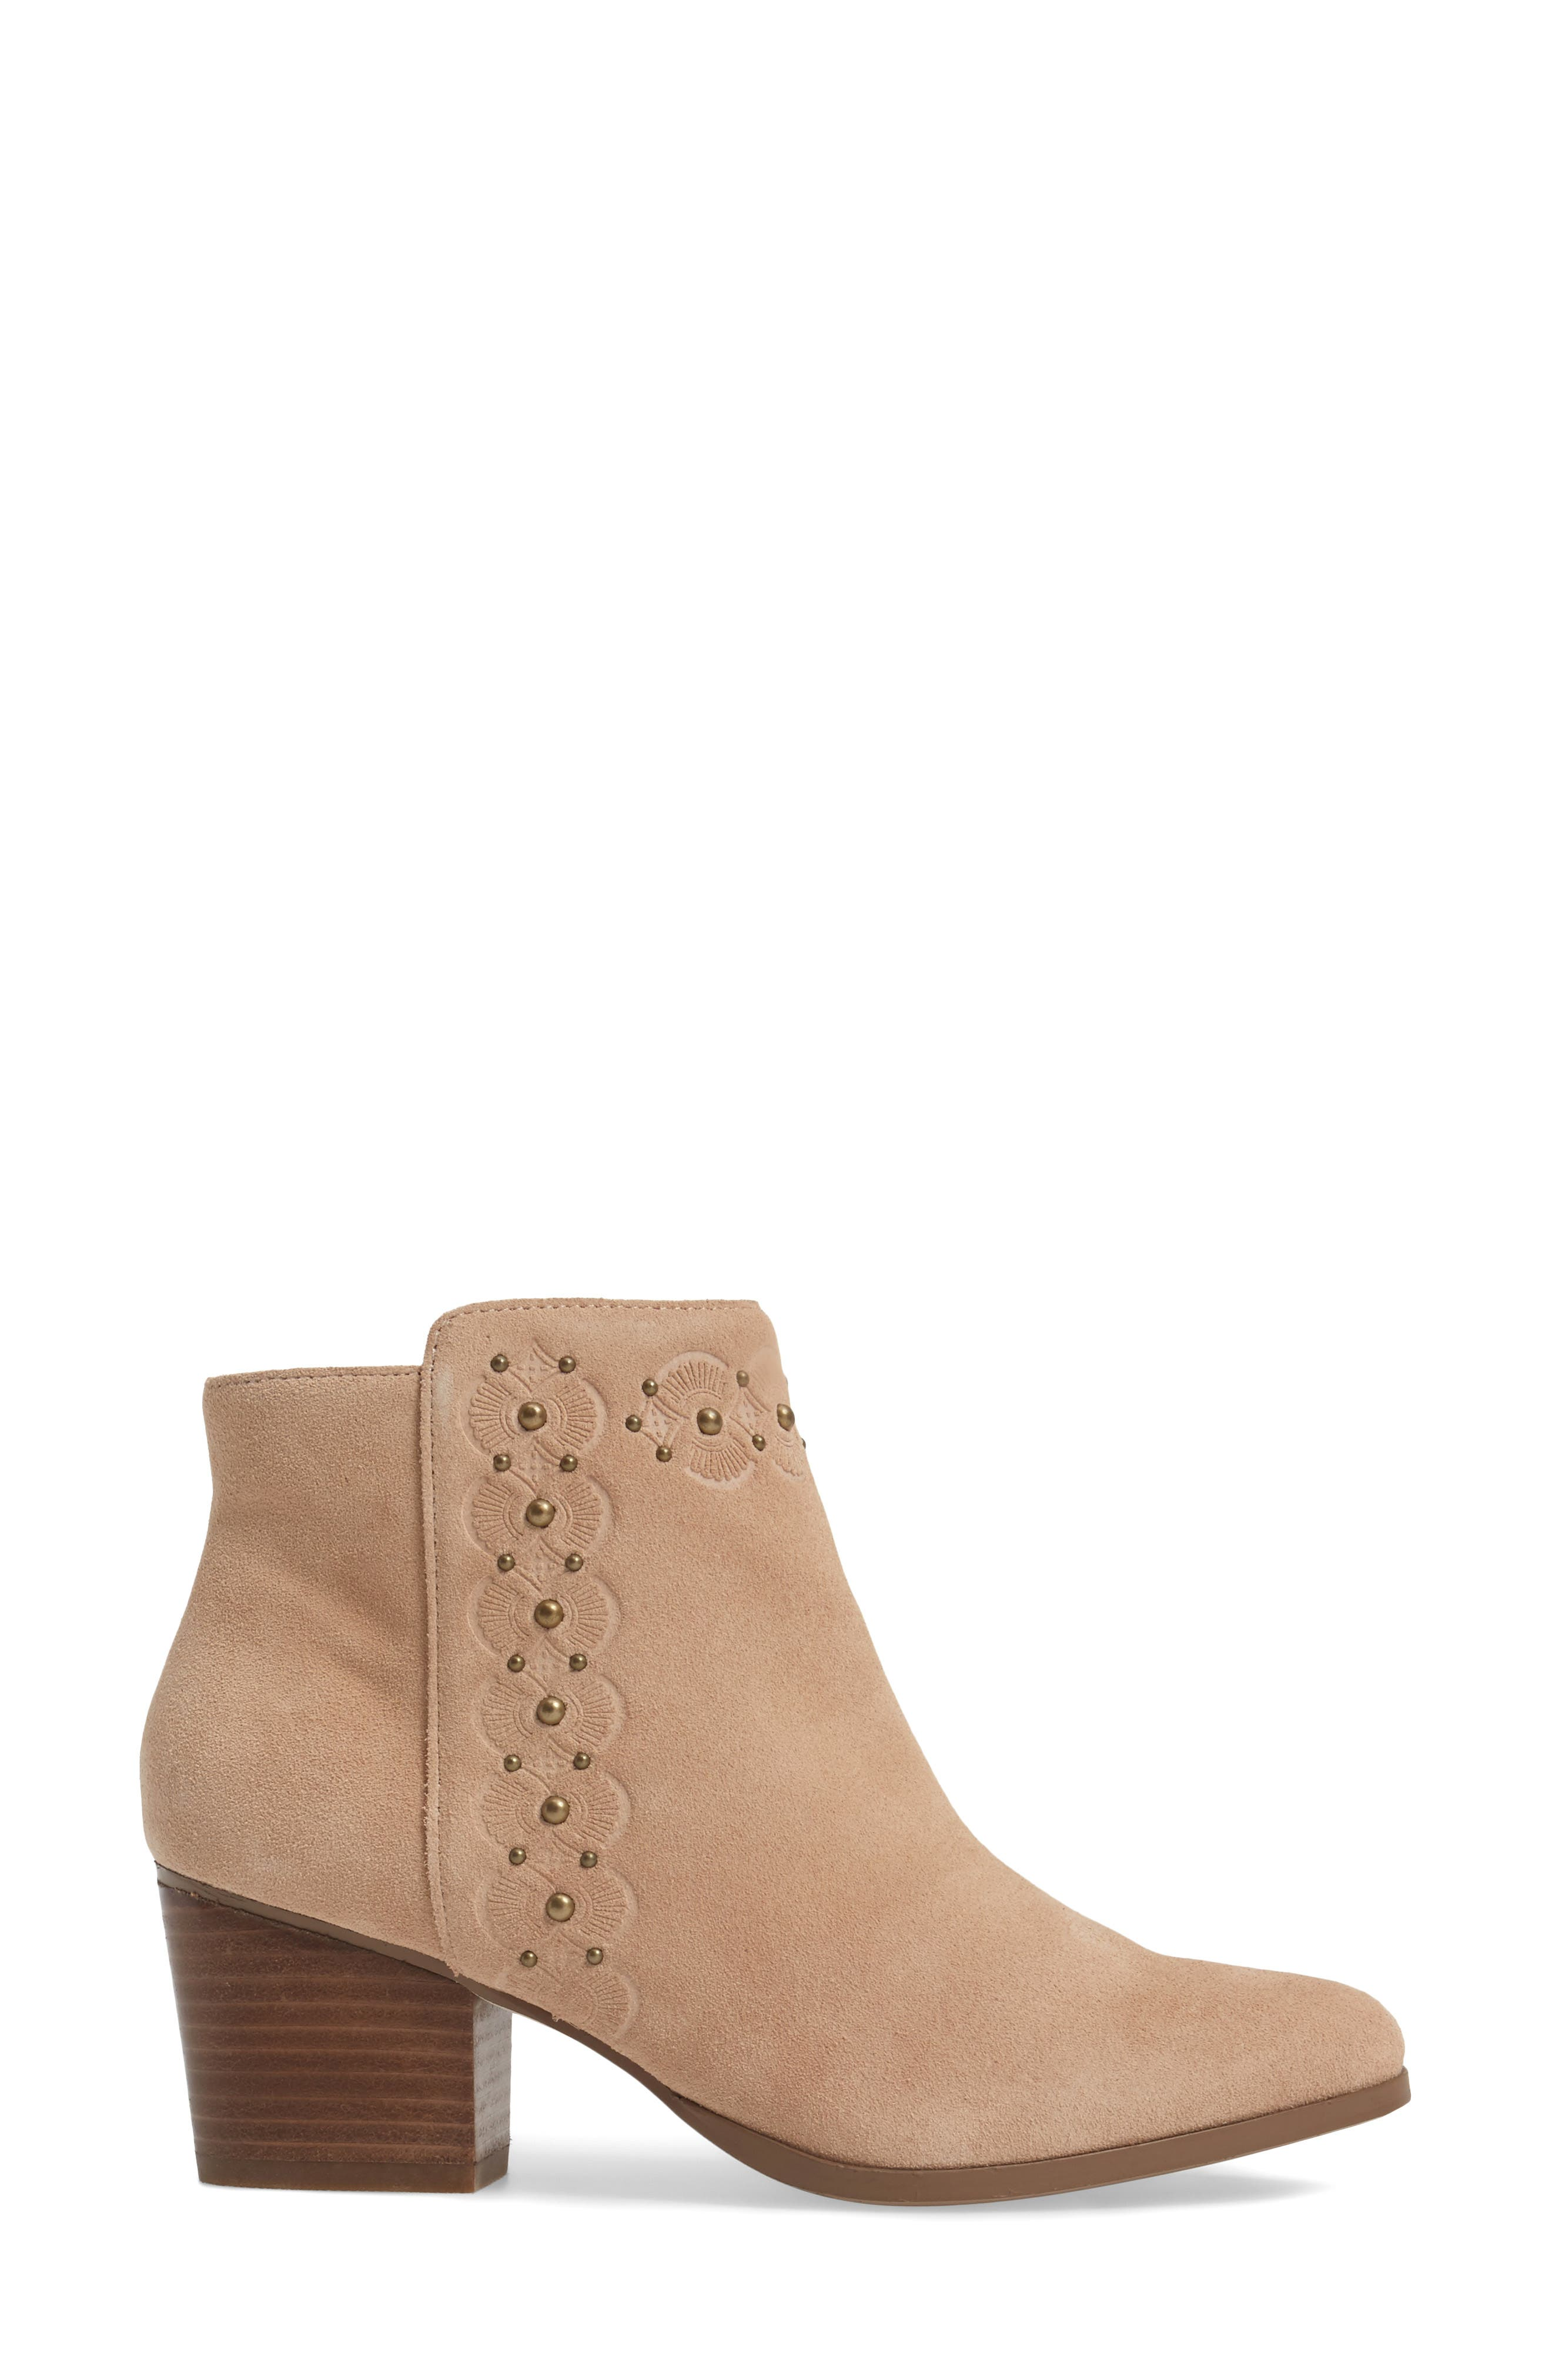 Gala Studded Embossed Bootie,                             Alternate thumbnail 8, color,